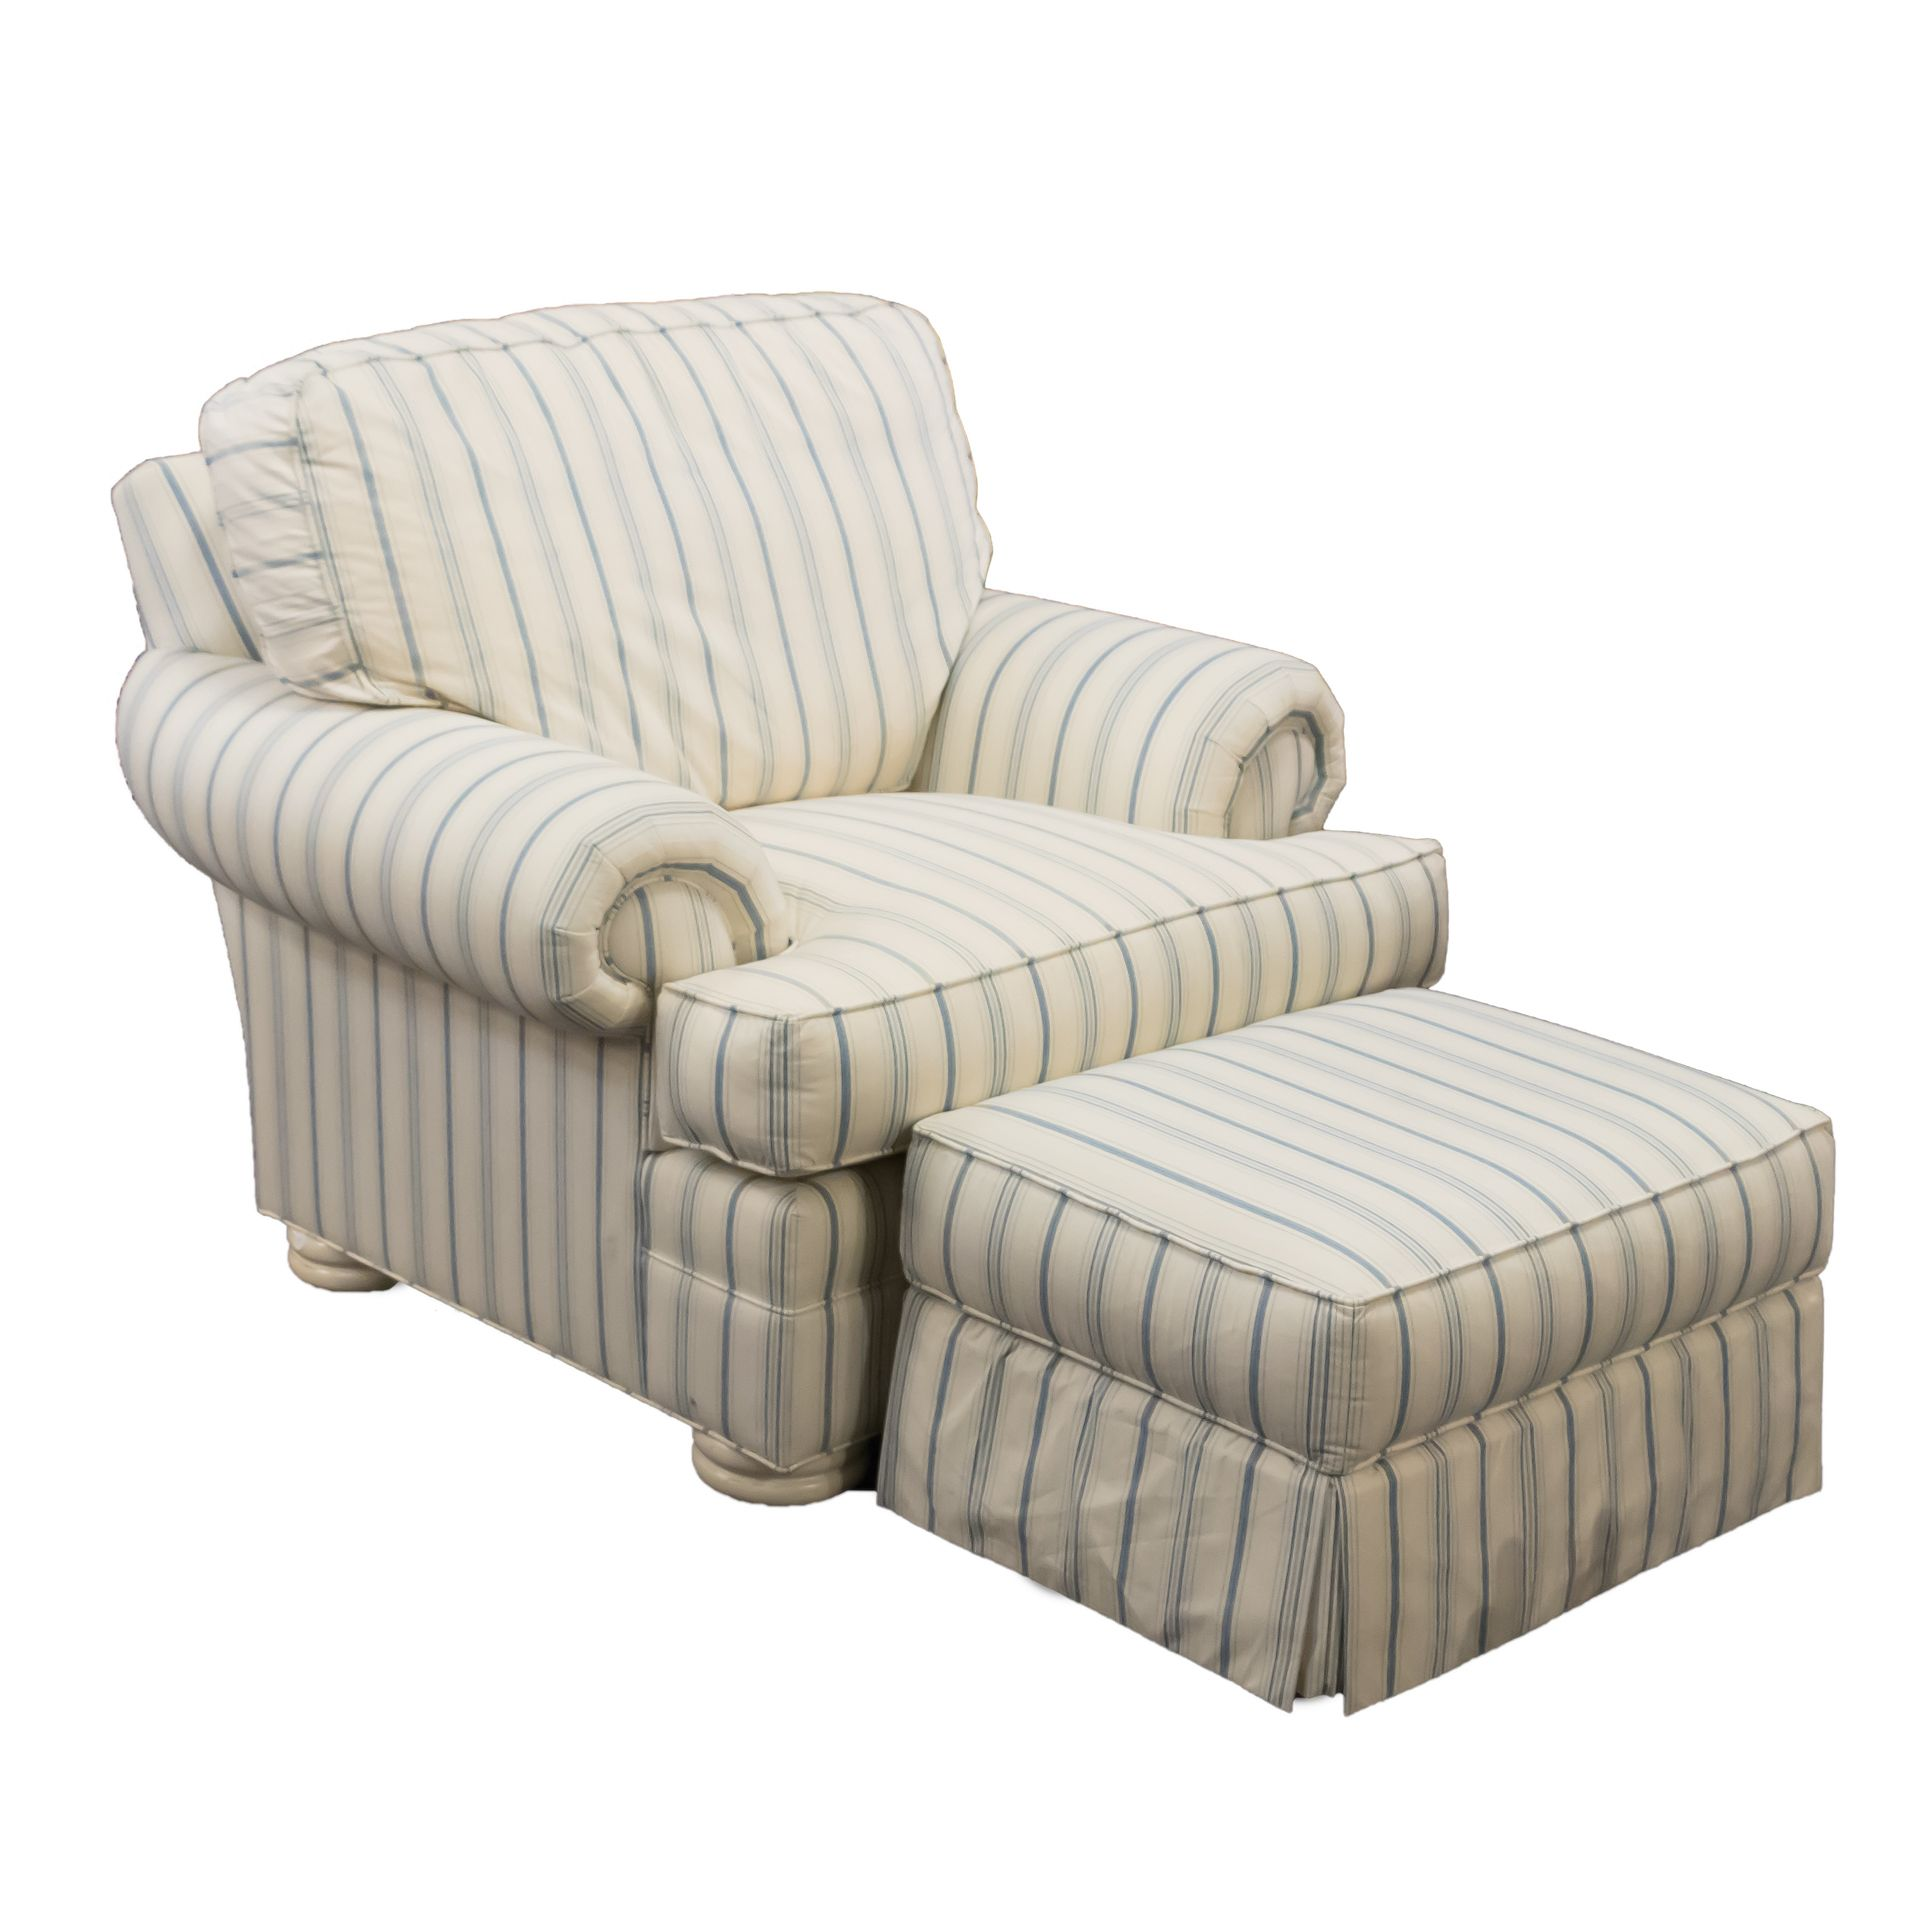 Thomasville Presents This Large Armchair With Matching